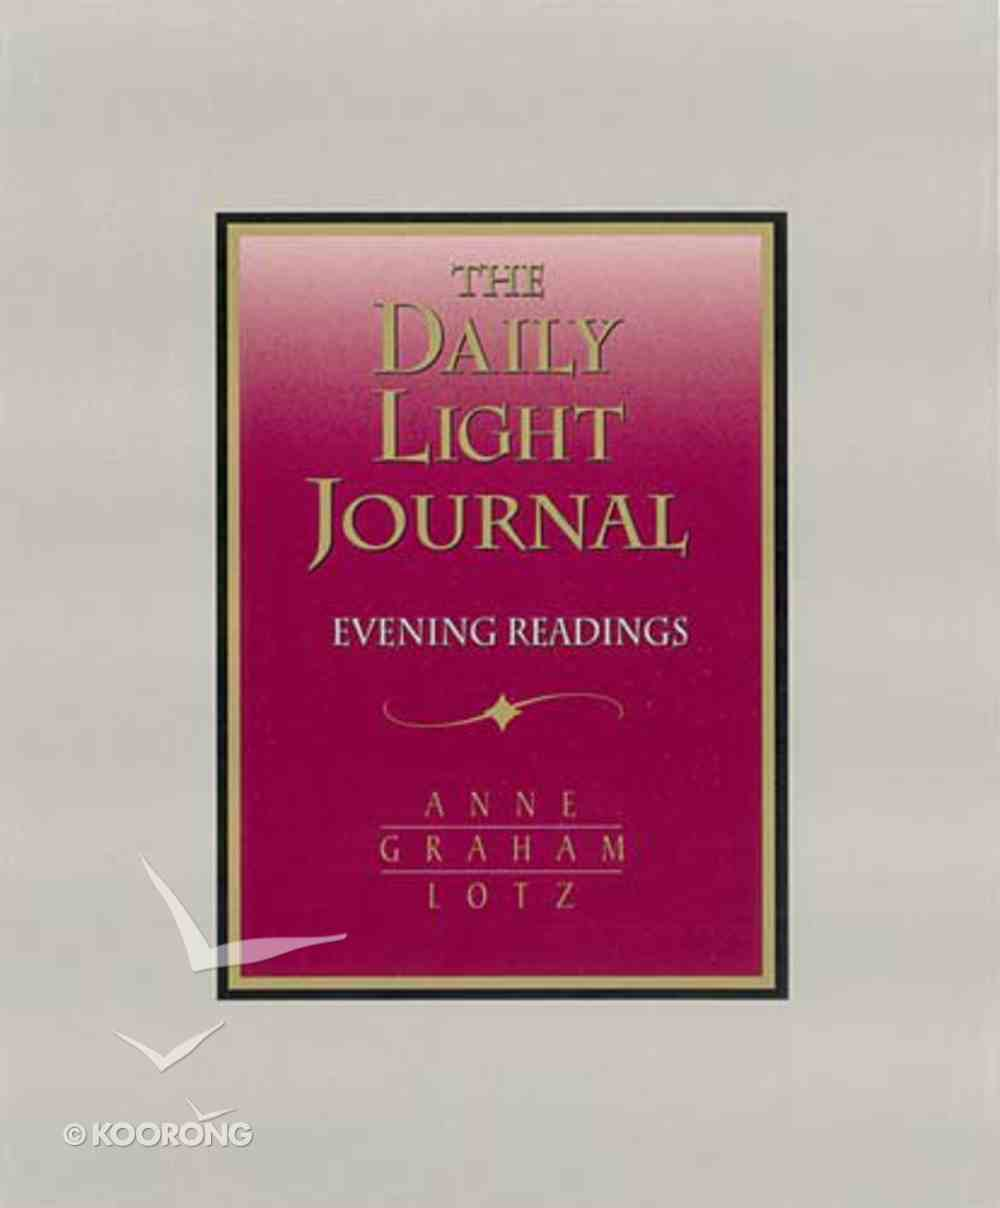 The Daily Light Journal Bonded Leather